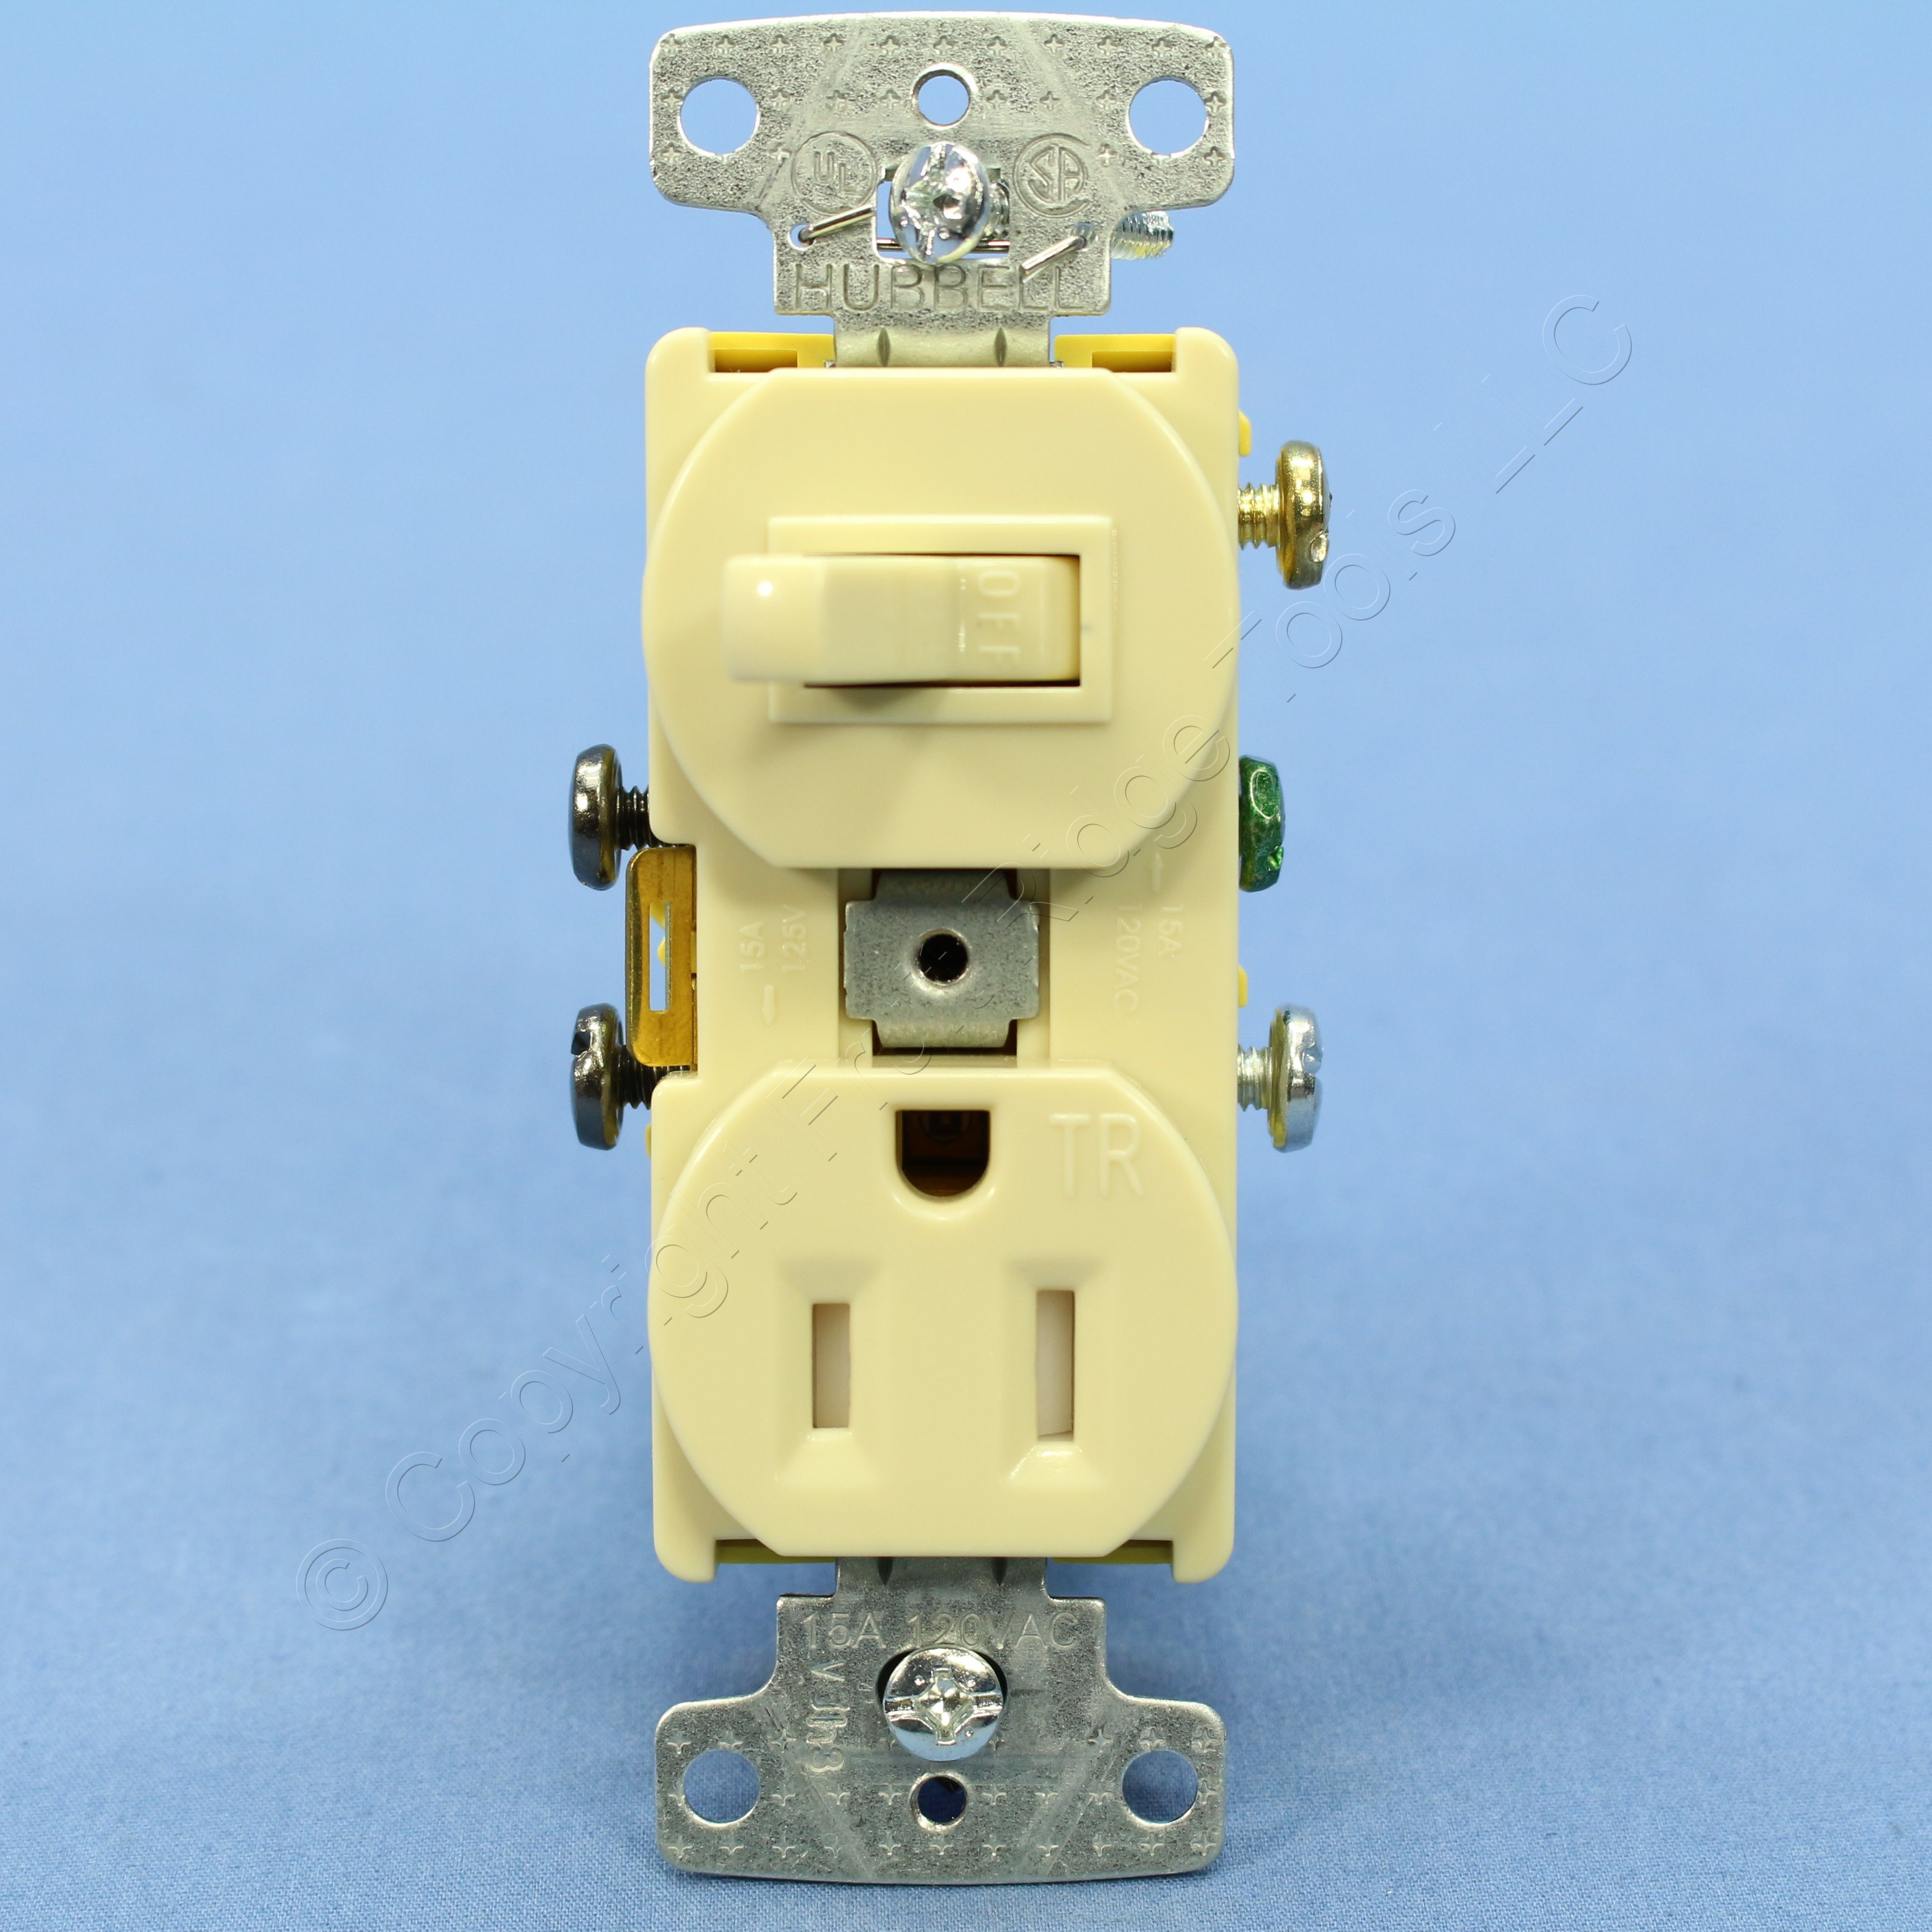 Hubbell Ivory Combo Light Switch Tamper Resistant Outlet Receptacle 15a Rc108itr